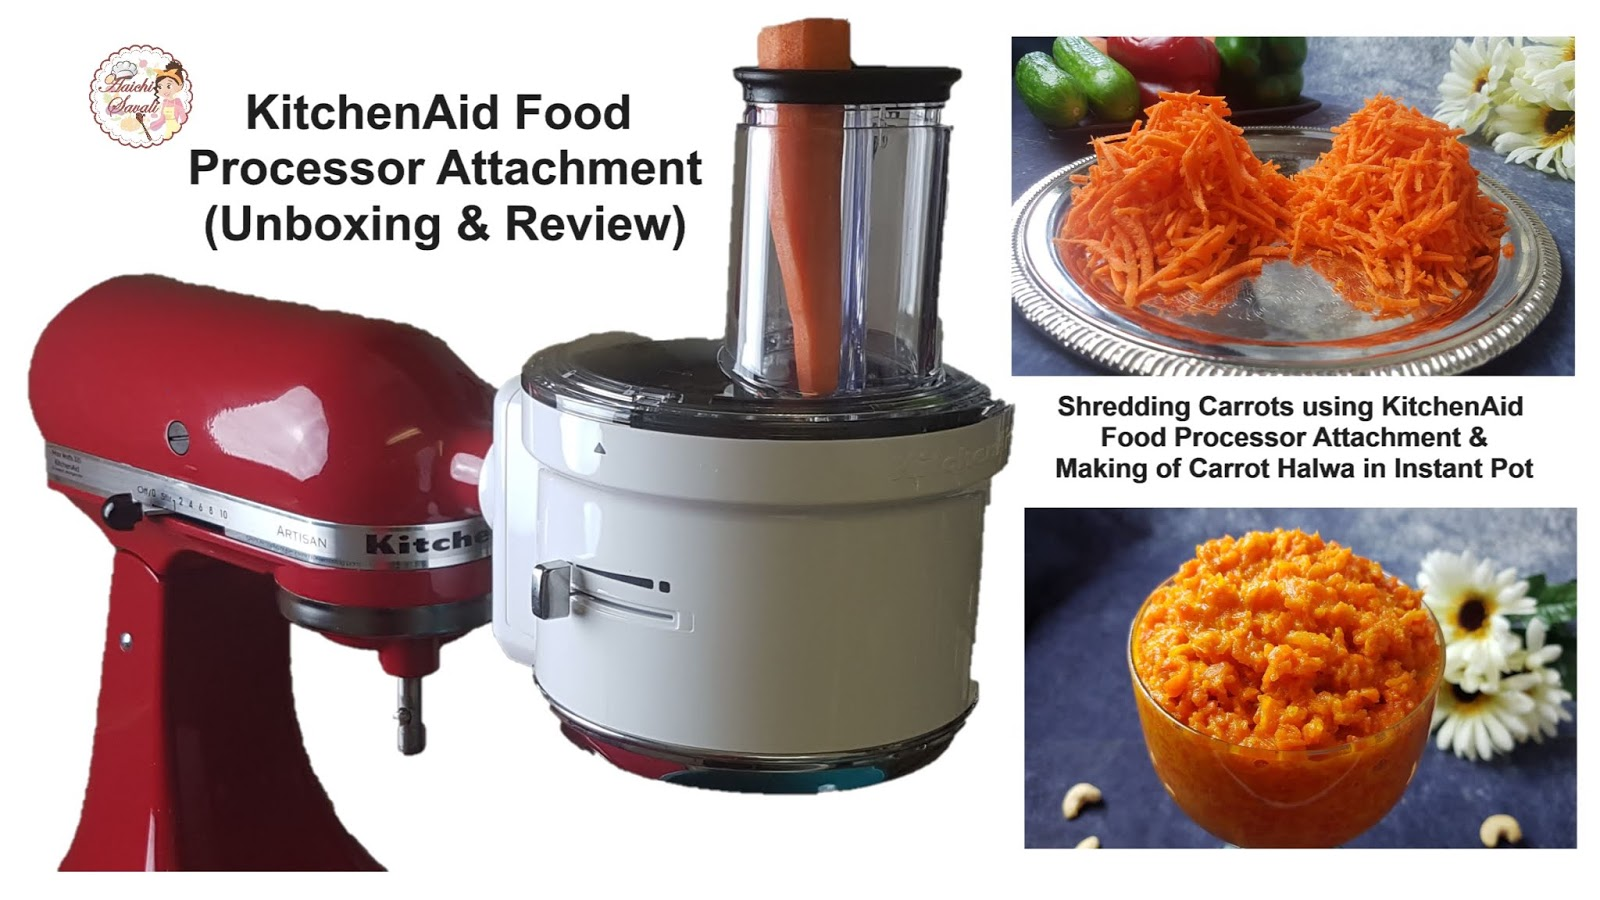 Unboxing and Review of the KitchenAid Food Processor ...